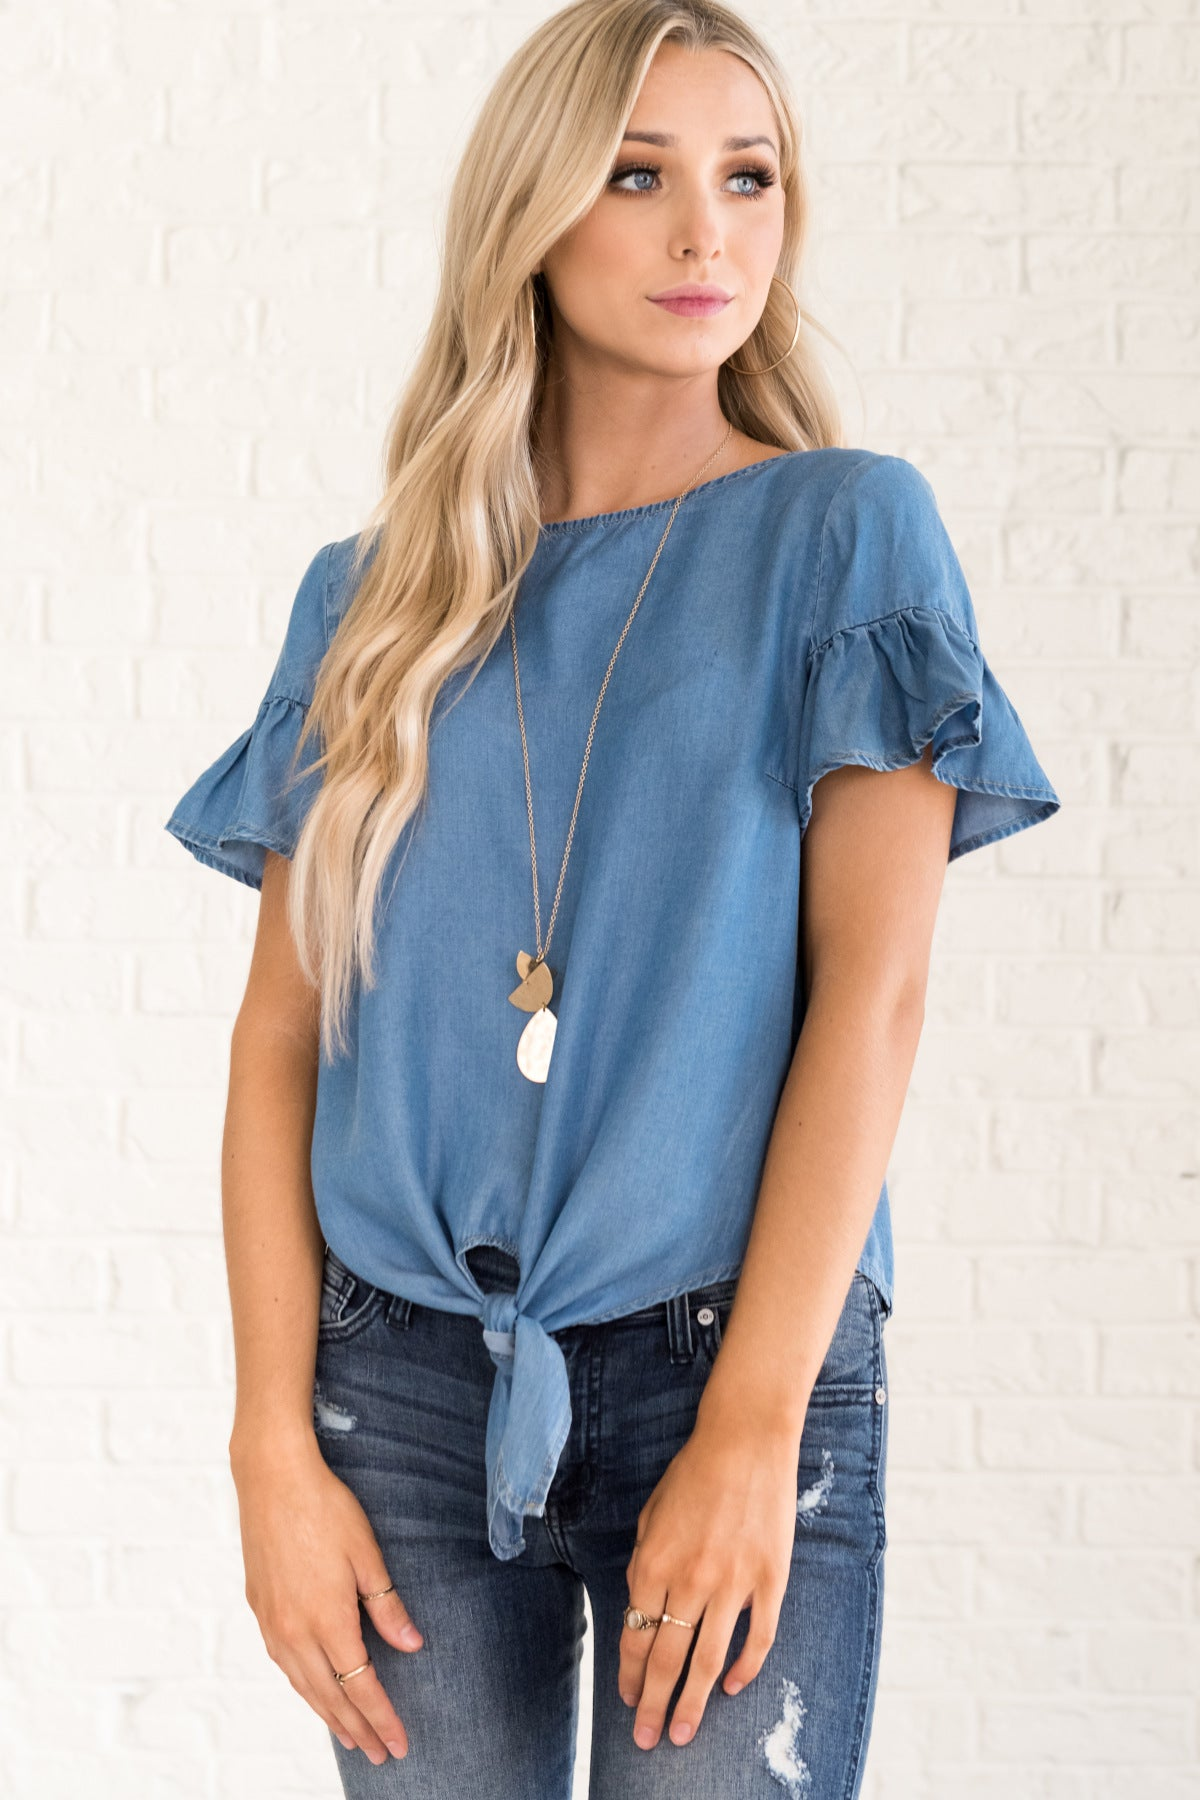 Blue Chambray Tie Front Tops for Women